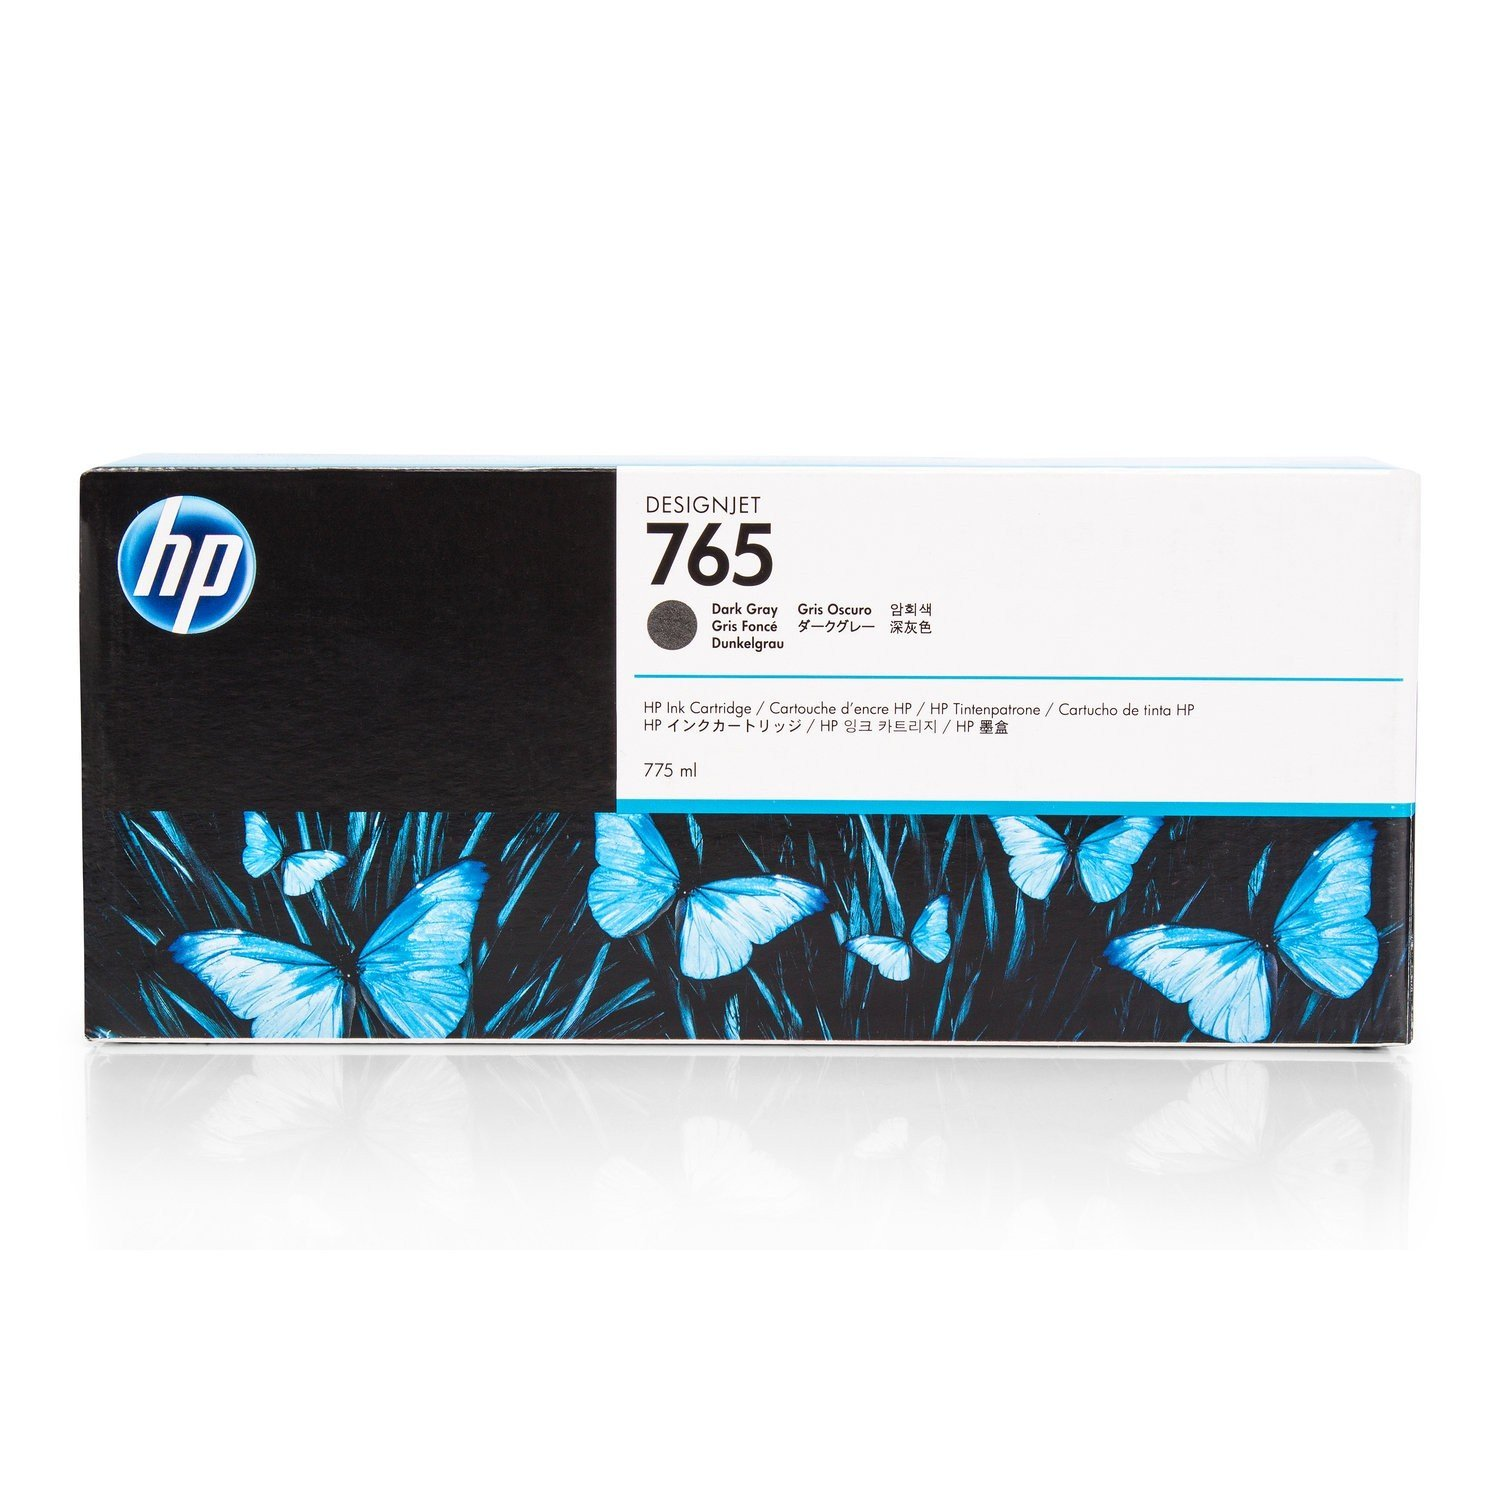 HP 765 775-ml Designjet Ink Cartridge (F9J54A) - Dark Gray